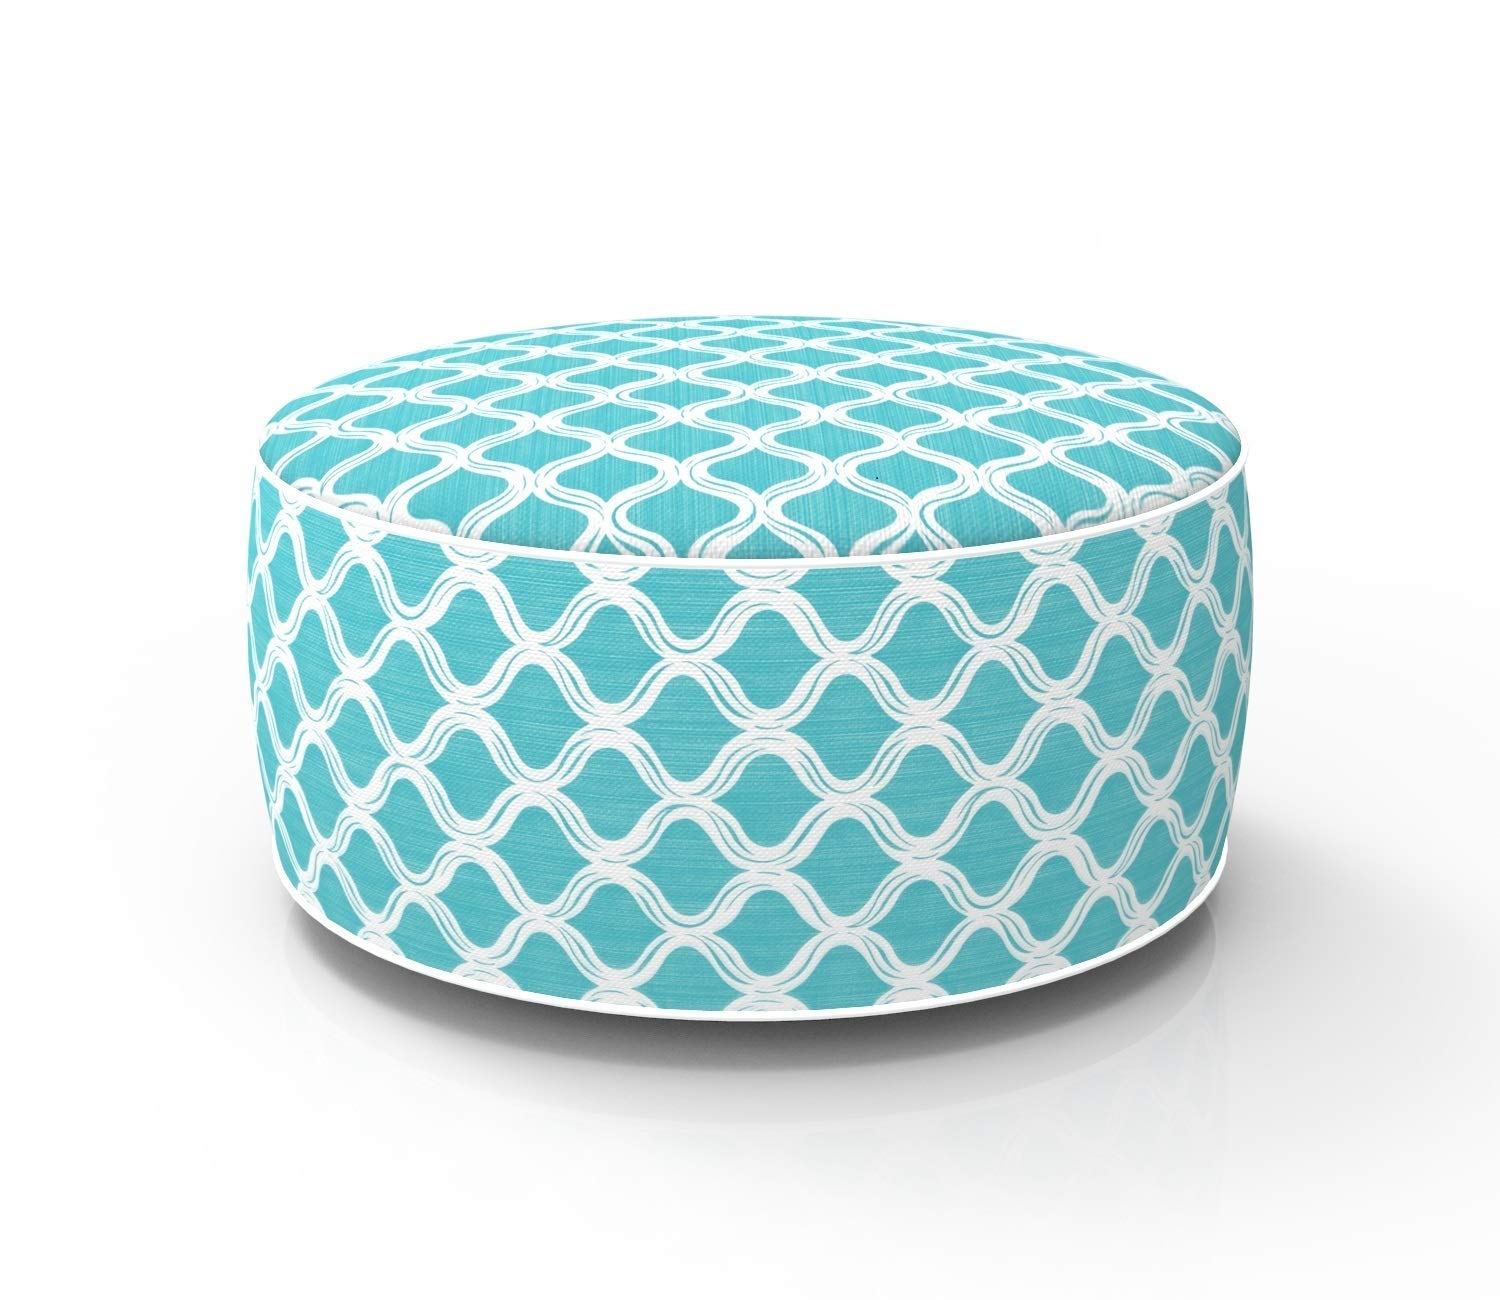 Fabritones Outdoor Inflatable Stool Blue Round Ottoman Portable Foot Rest for Patio, Camping Home Yoga - Suitable for Kids and Adults